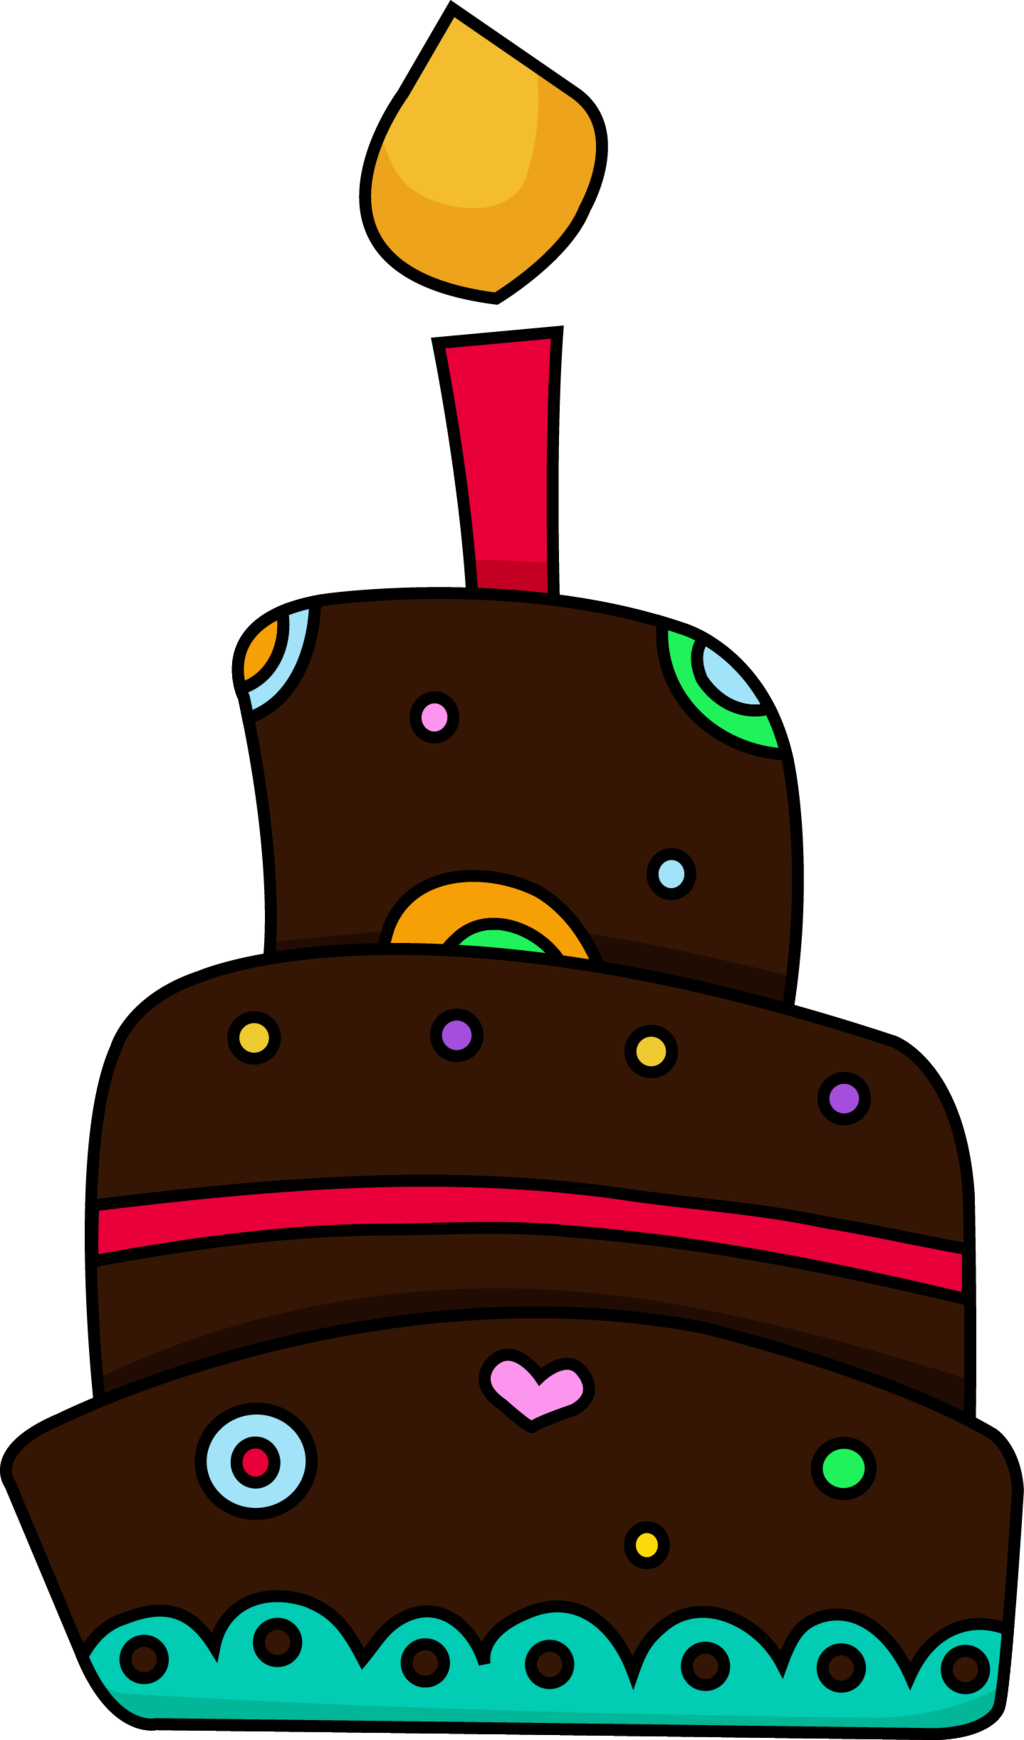 Cake Birthday Cake Clip Art Birthday Cake Images Birthday Cake